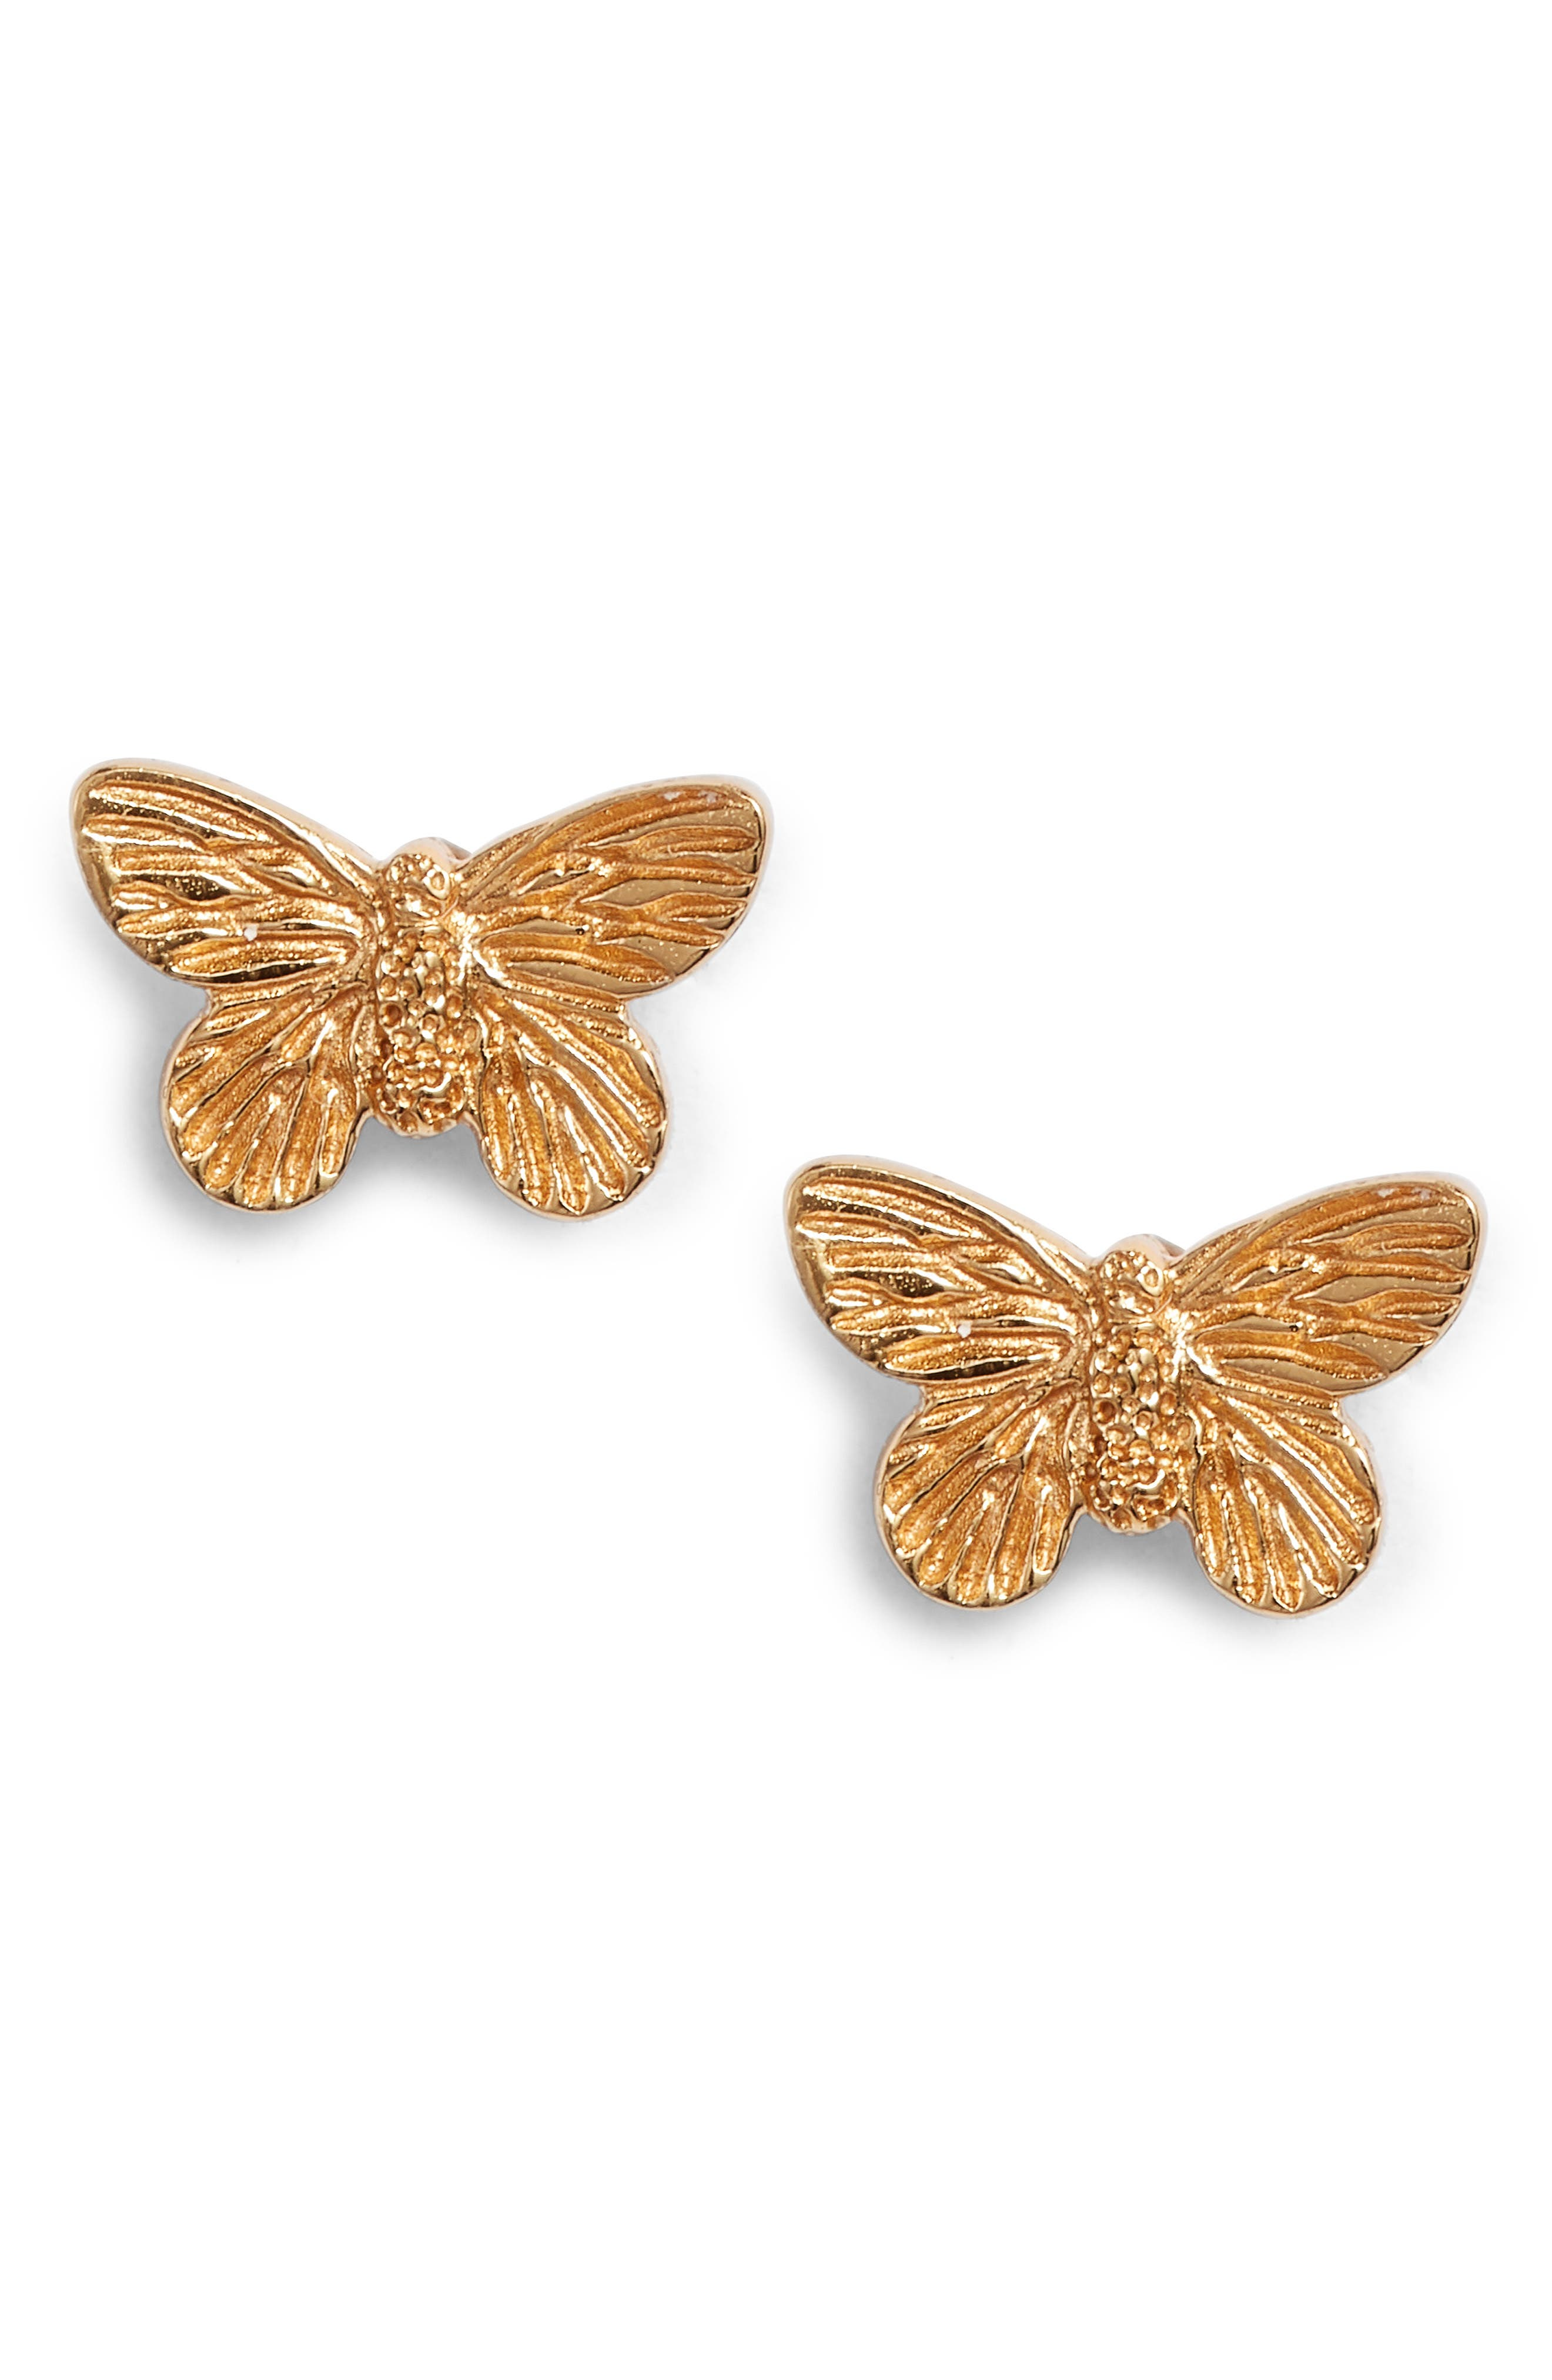 3D Butterfly Stud Earrings,                             Main thumbnail 1, color,                             GOLD